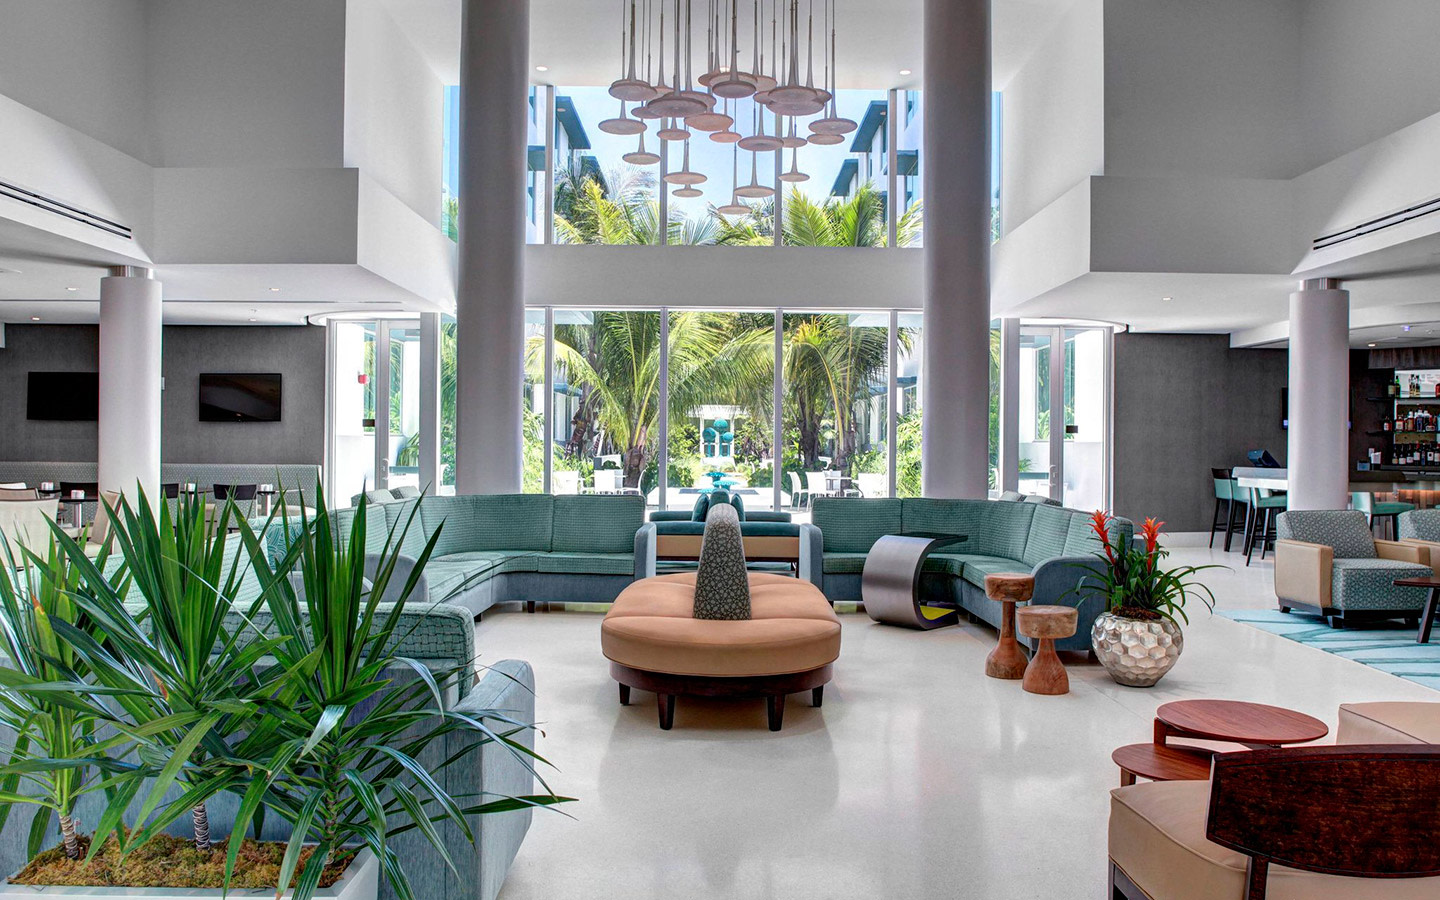 Piccola Cucina Miami Beach Residence Inn Miami Beach Nel Surfside Fl